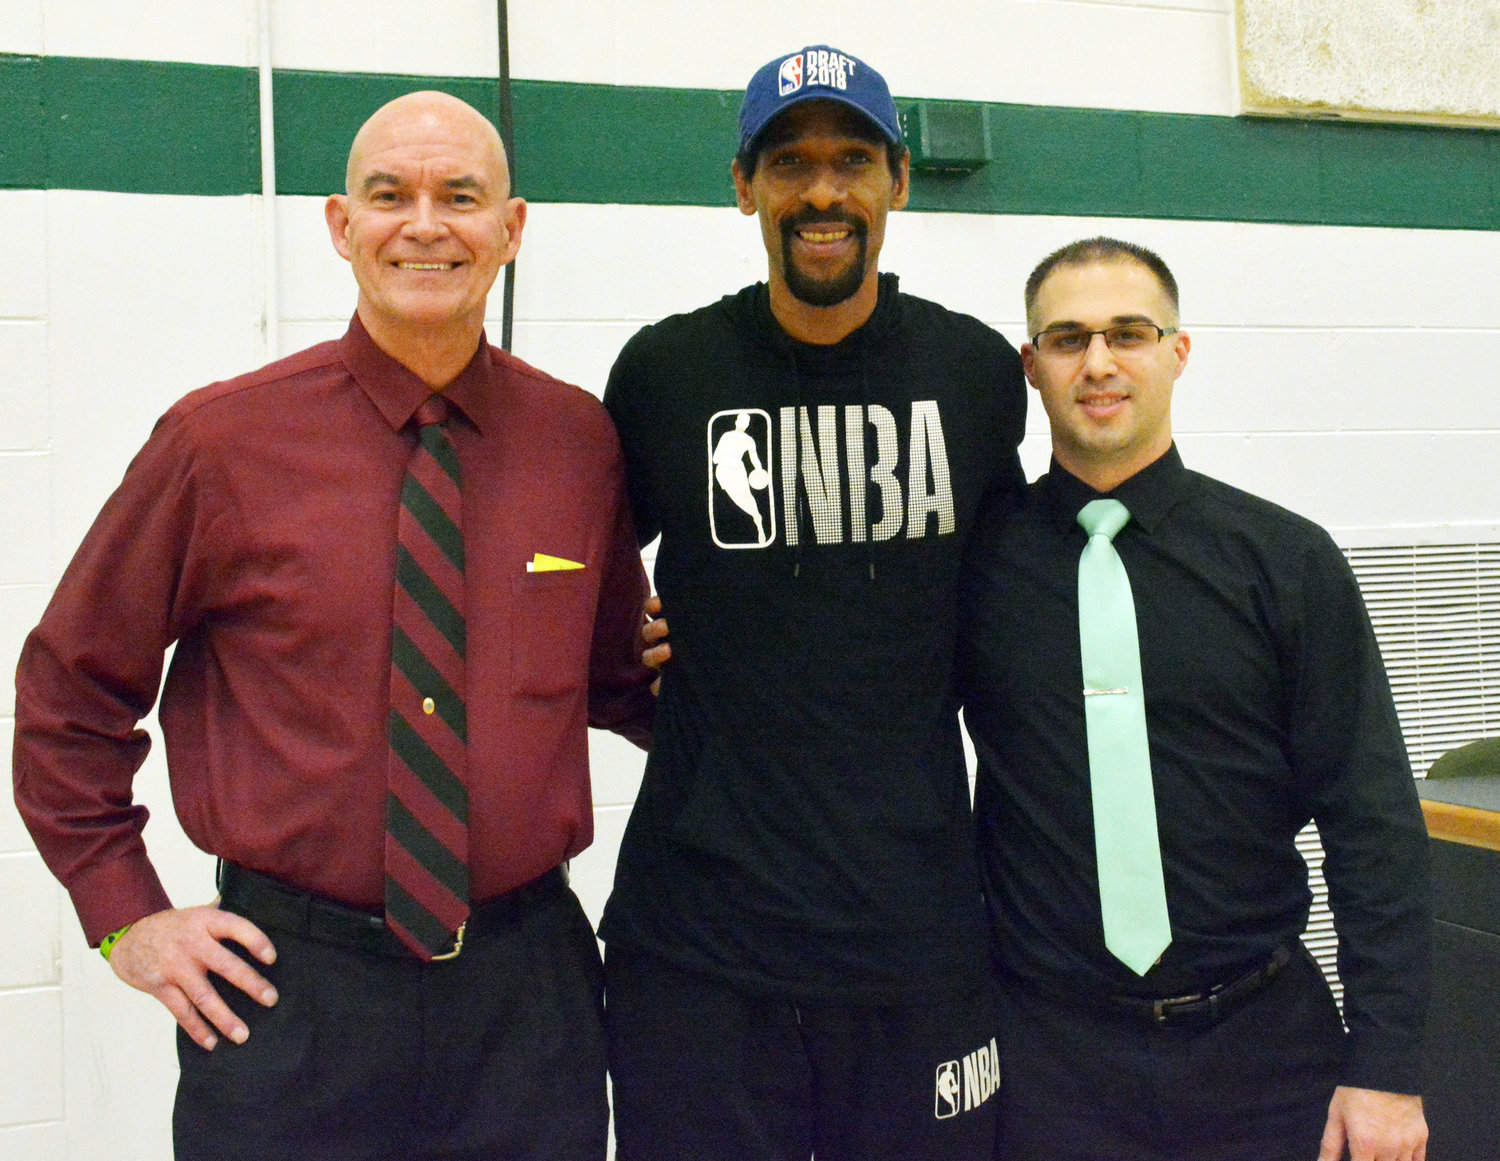 CAUGHT BETWEEN COACHES — Moten between Oriskany basketball coach Rick Cooke and Westmoreland basketball coach Nick Facciolo all take a minute before tip off to show their support for Lawrence Moten Night on Friday, Dec. 13 at Westmoreland High School.